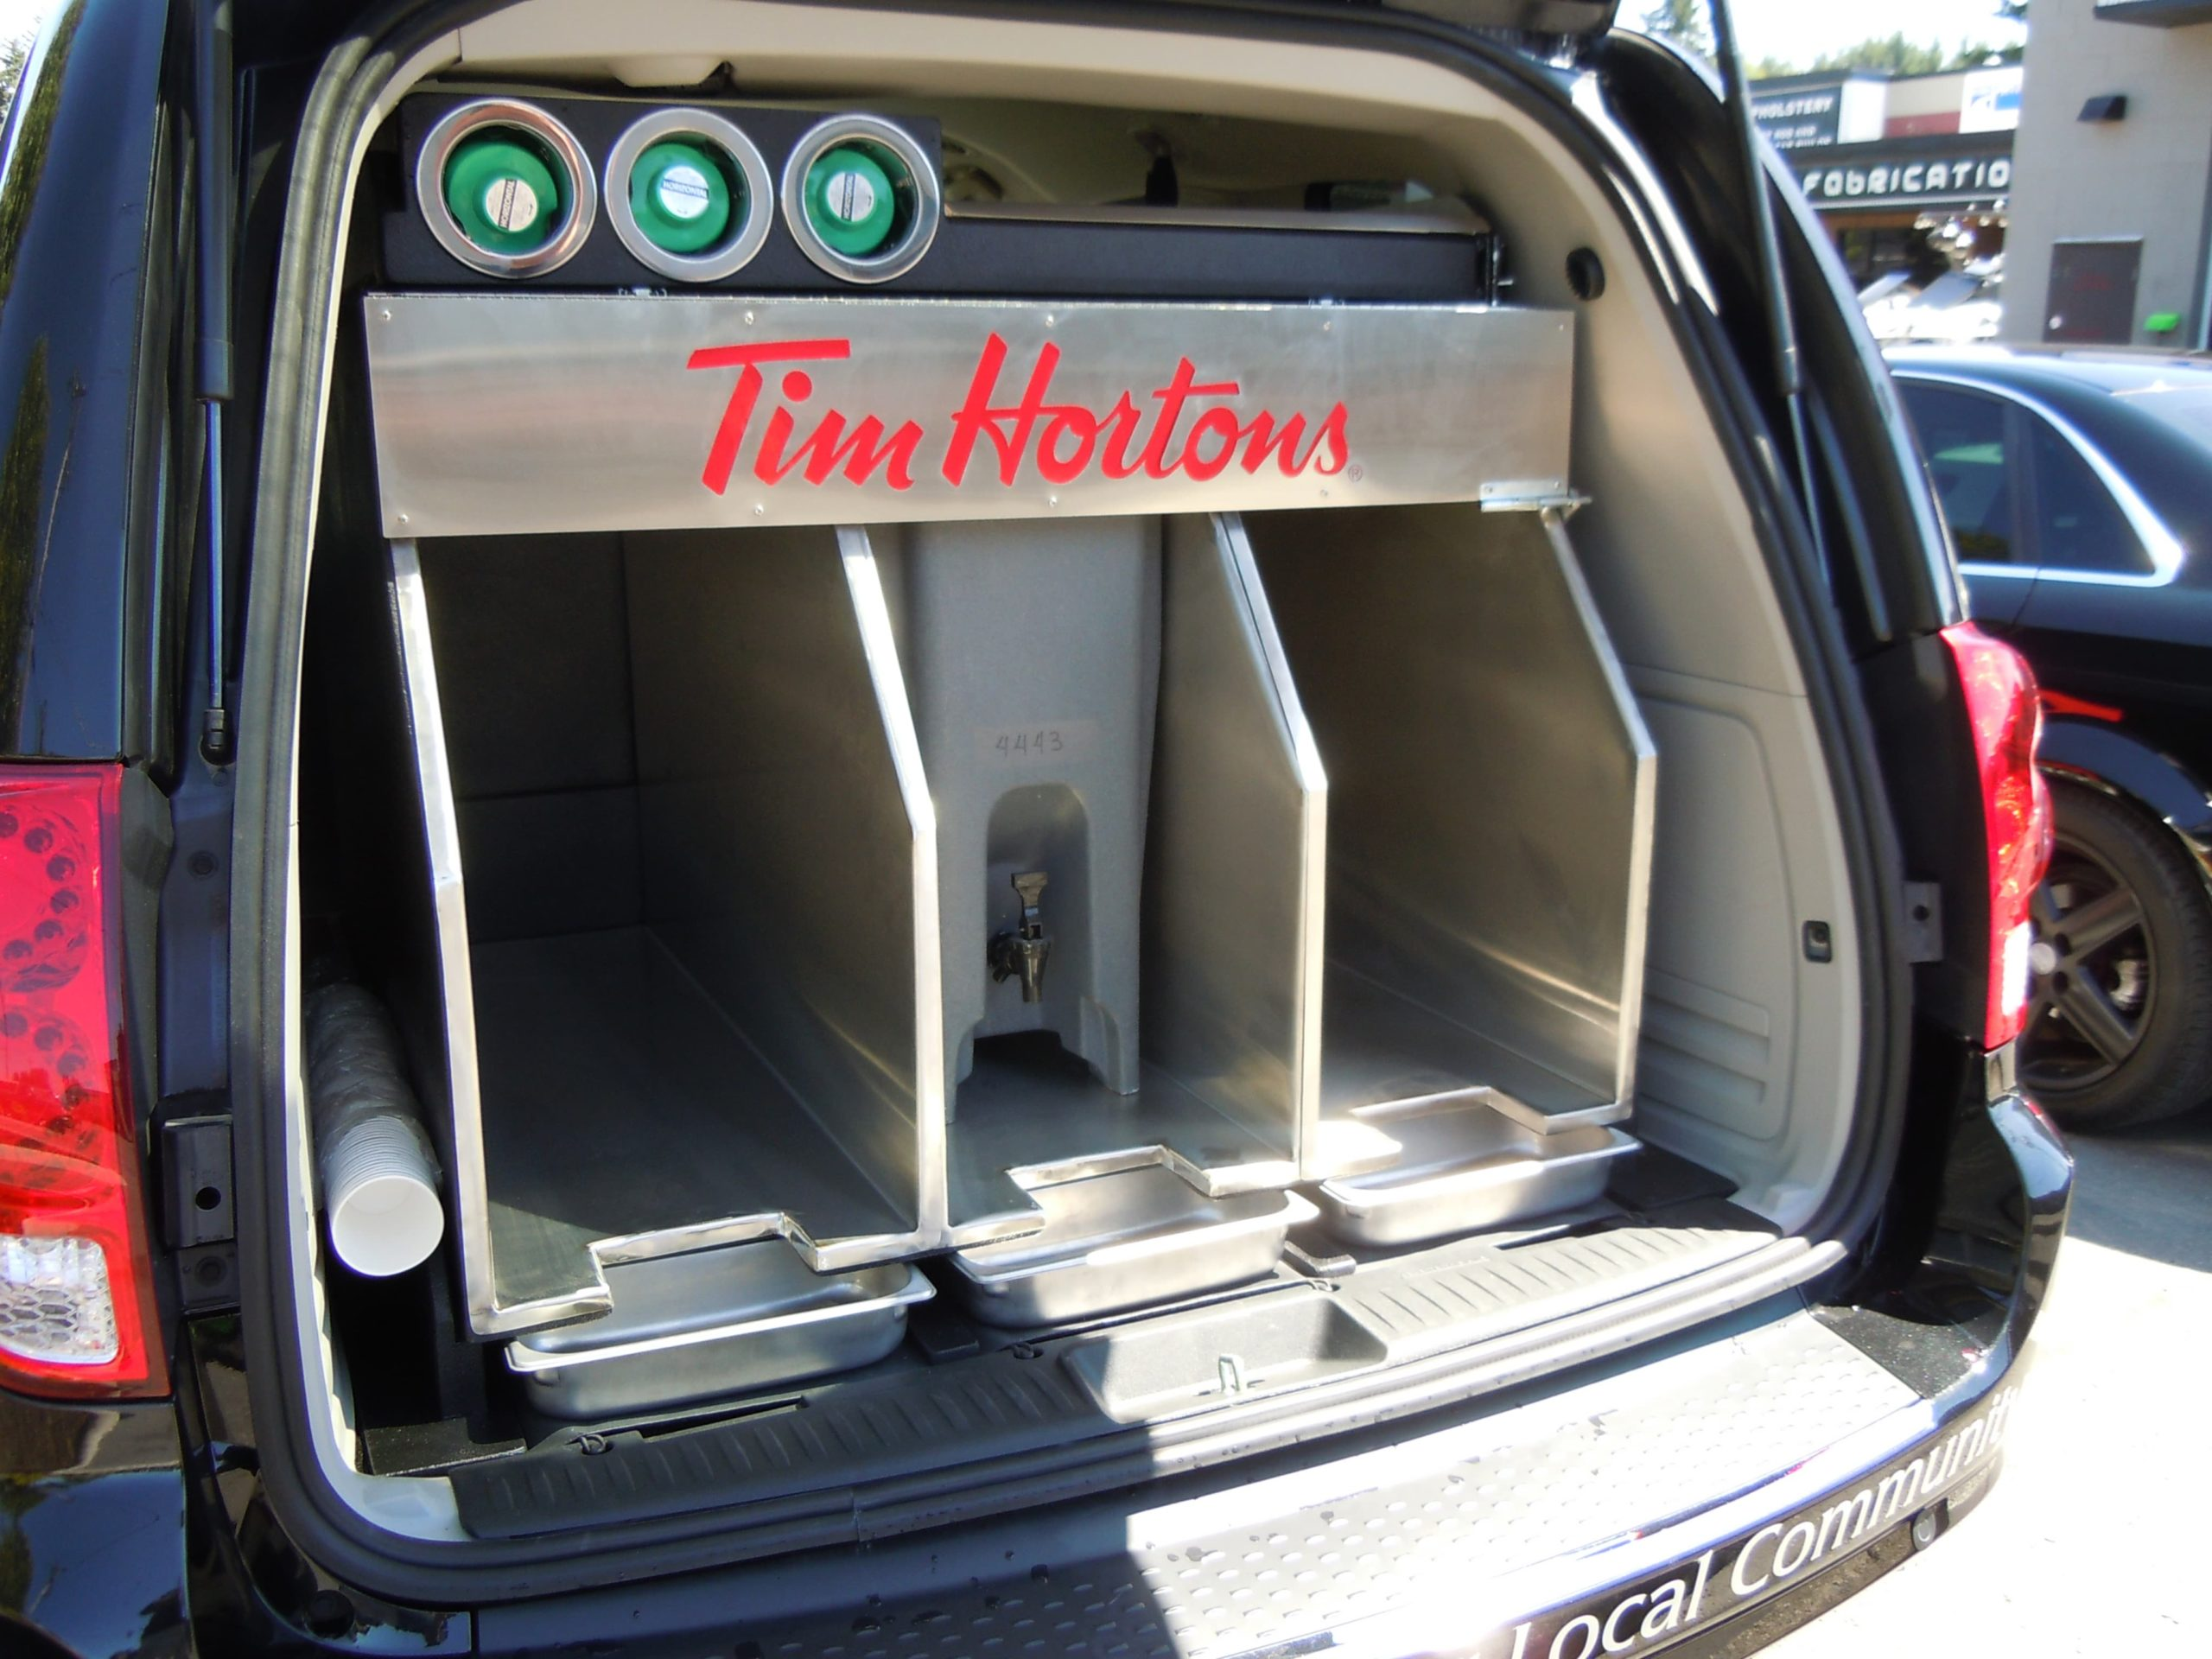 360 Fabrications Tim Hortons Van 3